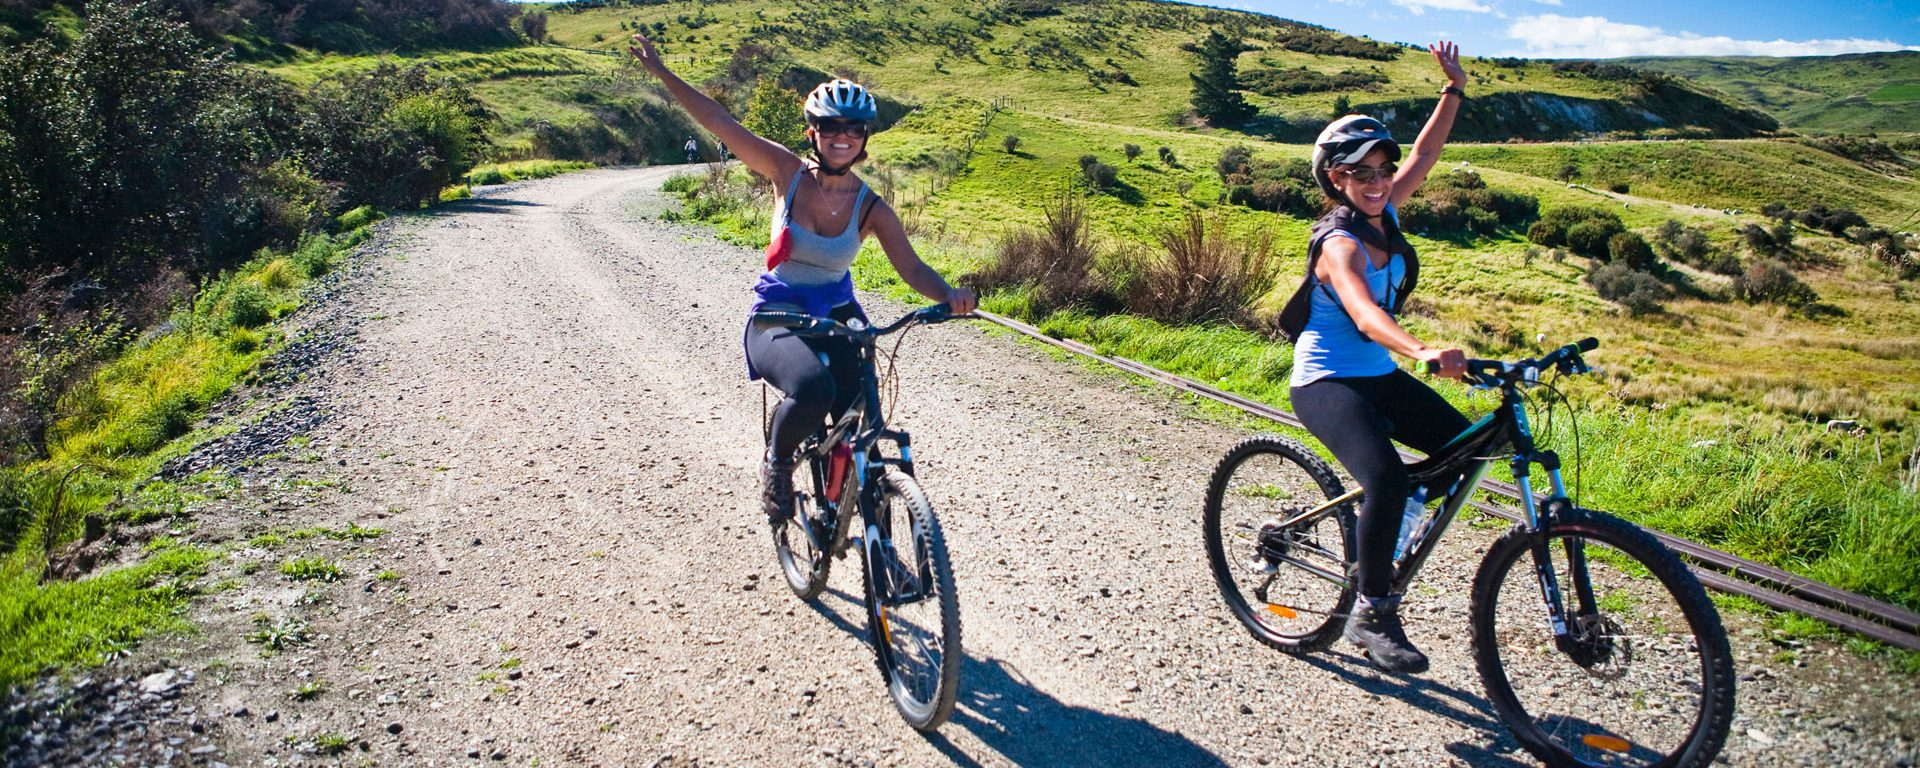 Bikers at the end of the Otago Central Rail Trail in Hyde, New Zealand